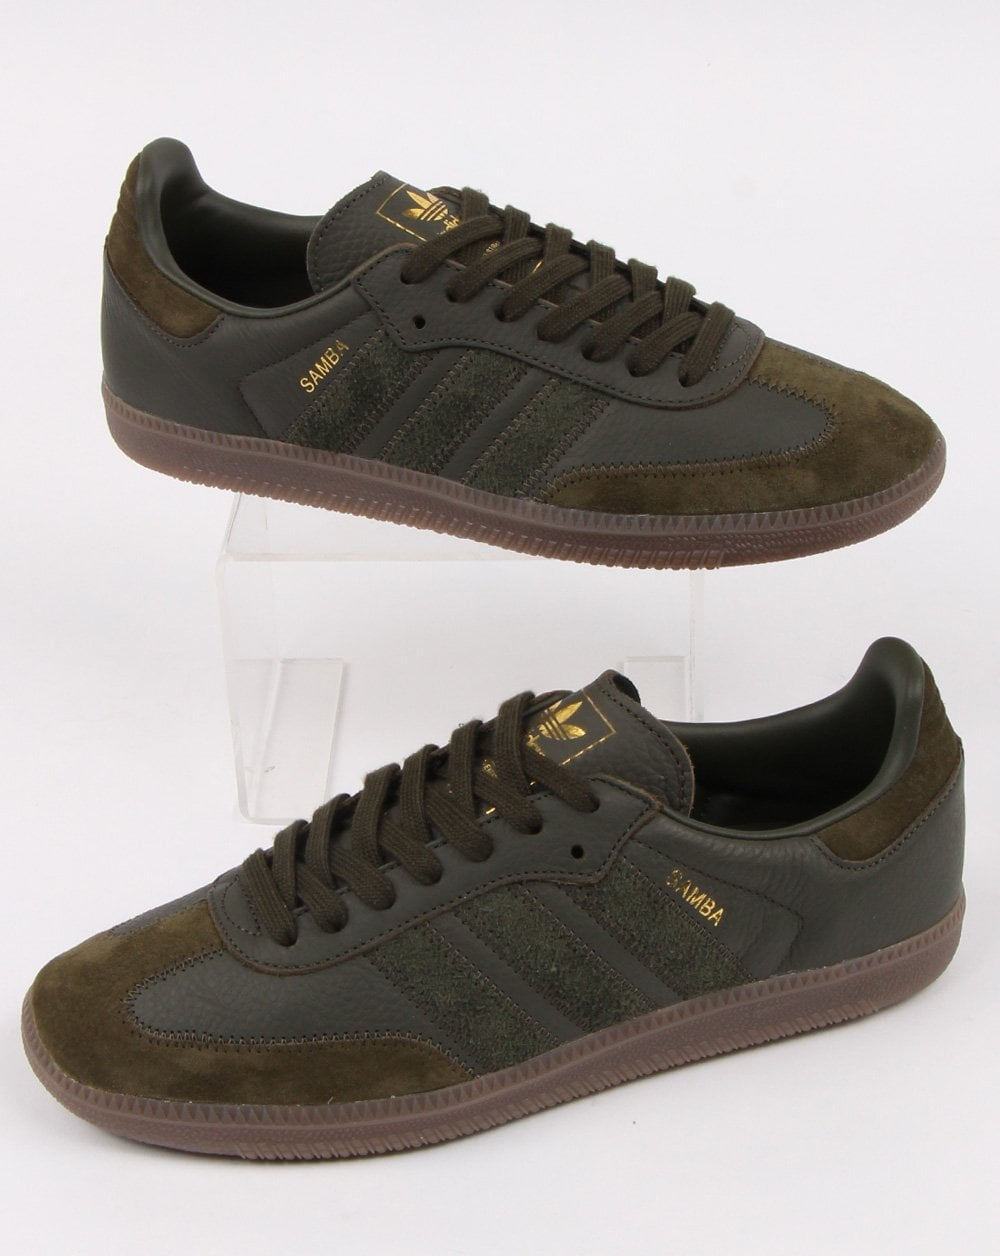 check out 60c2d 5e1bf Adidas Samba Og Ft Trainers Night Cargo